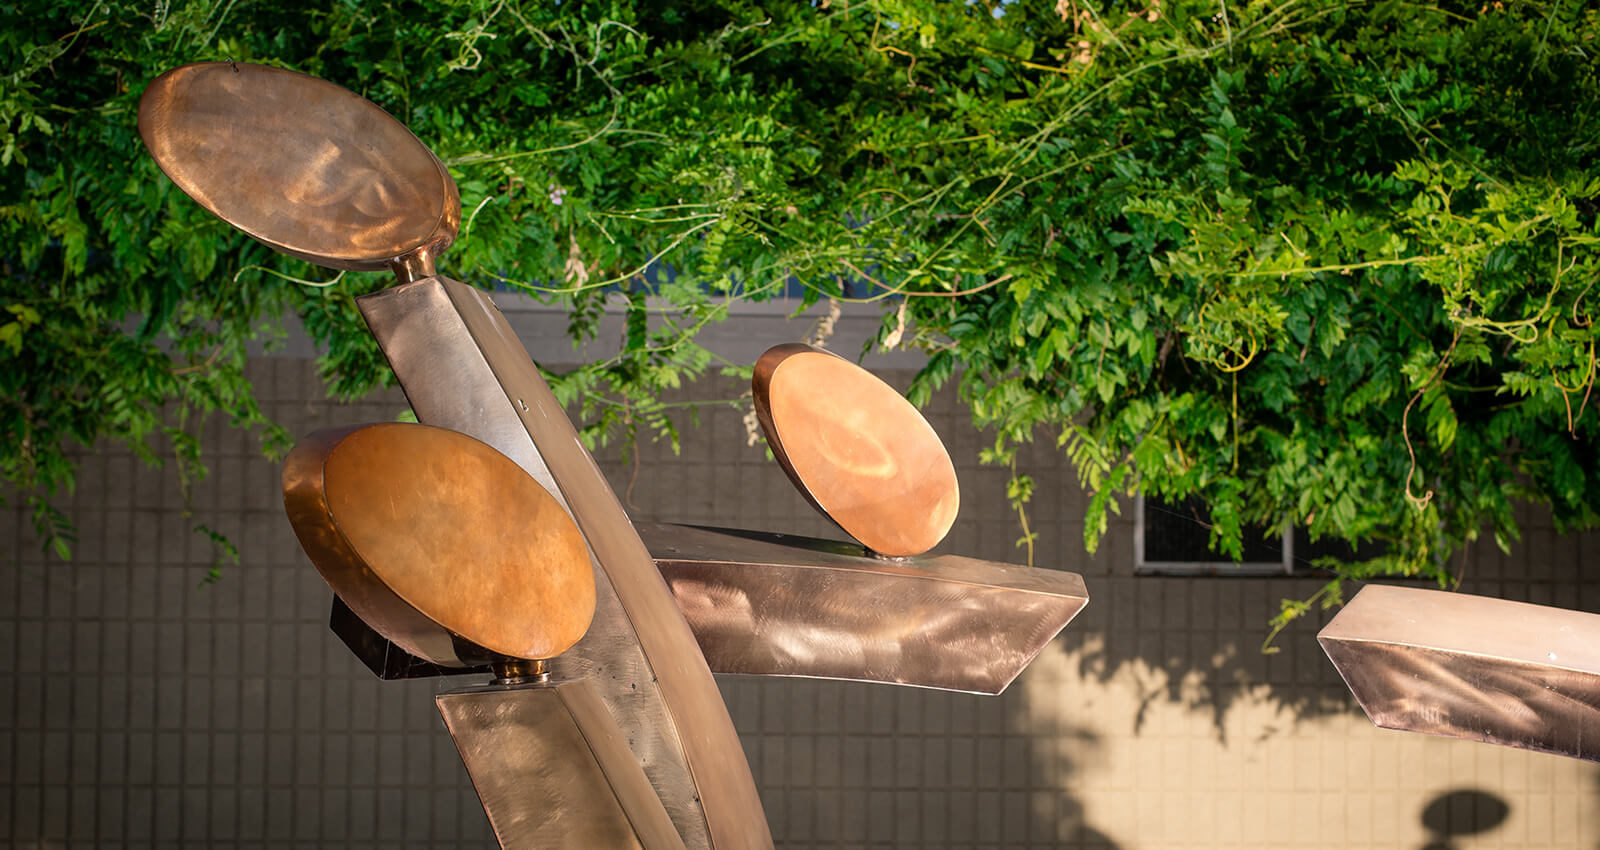 A section of the Family Group artwork's brushed steel and copper structure.